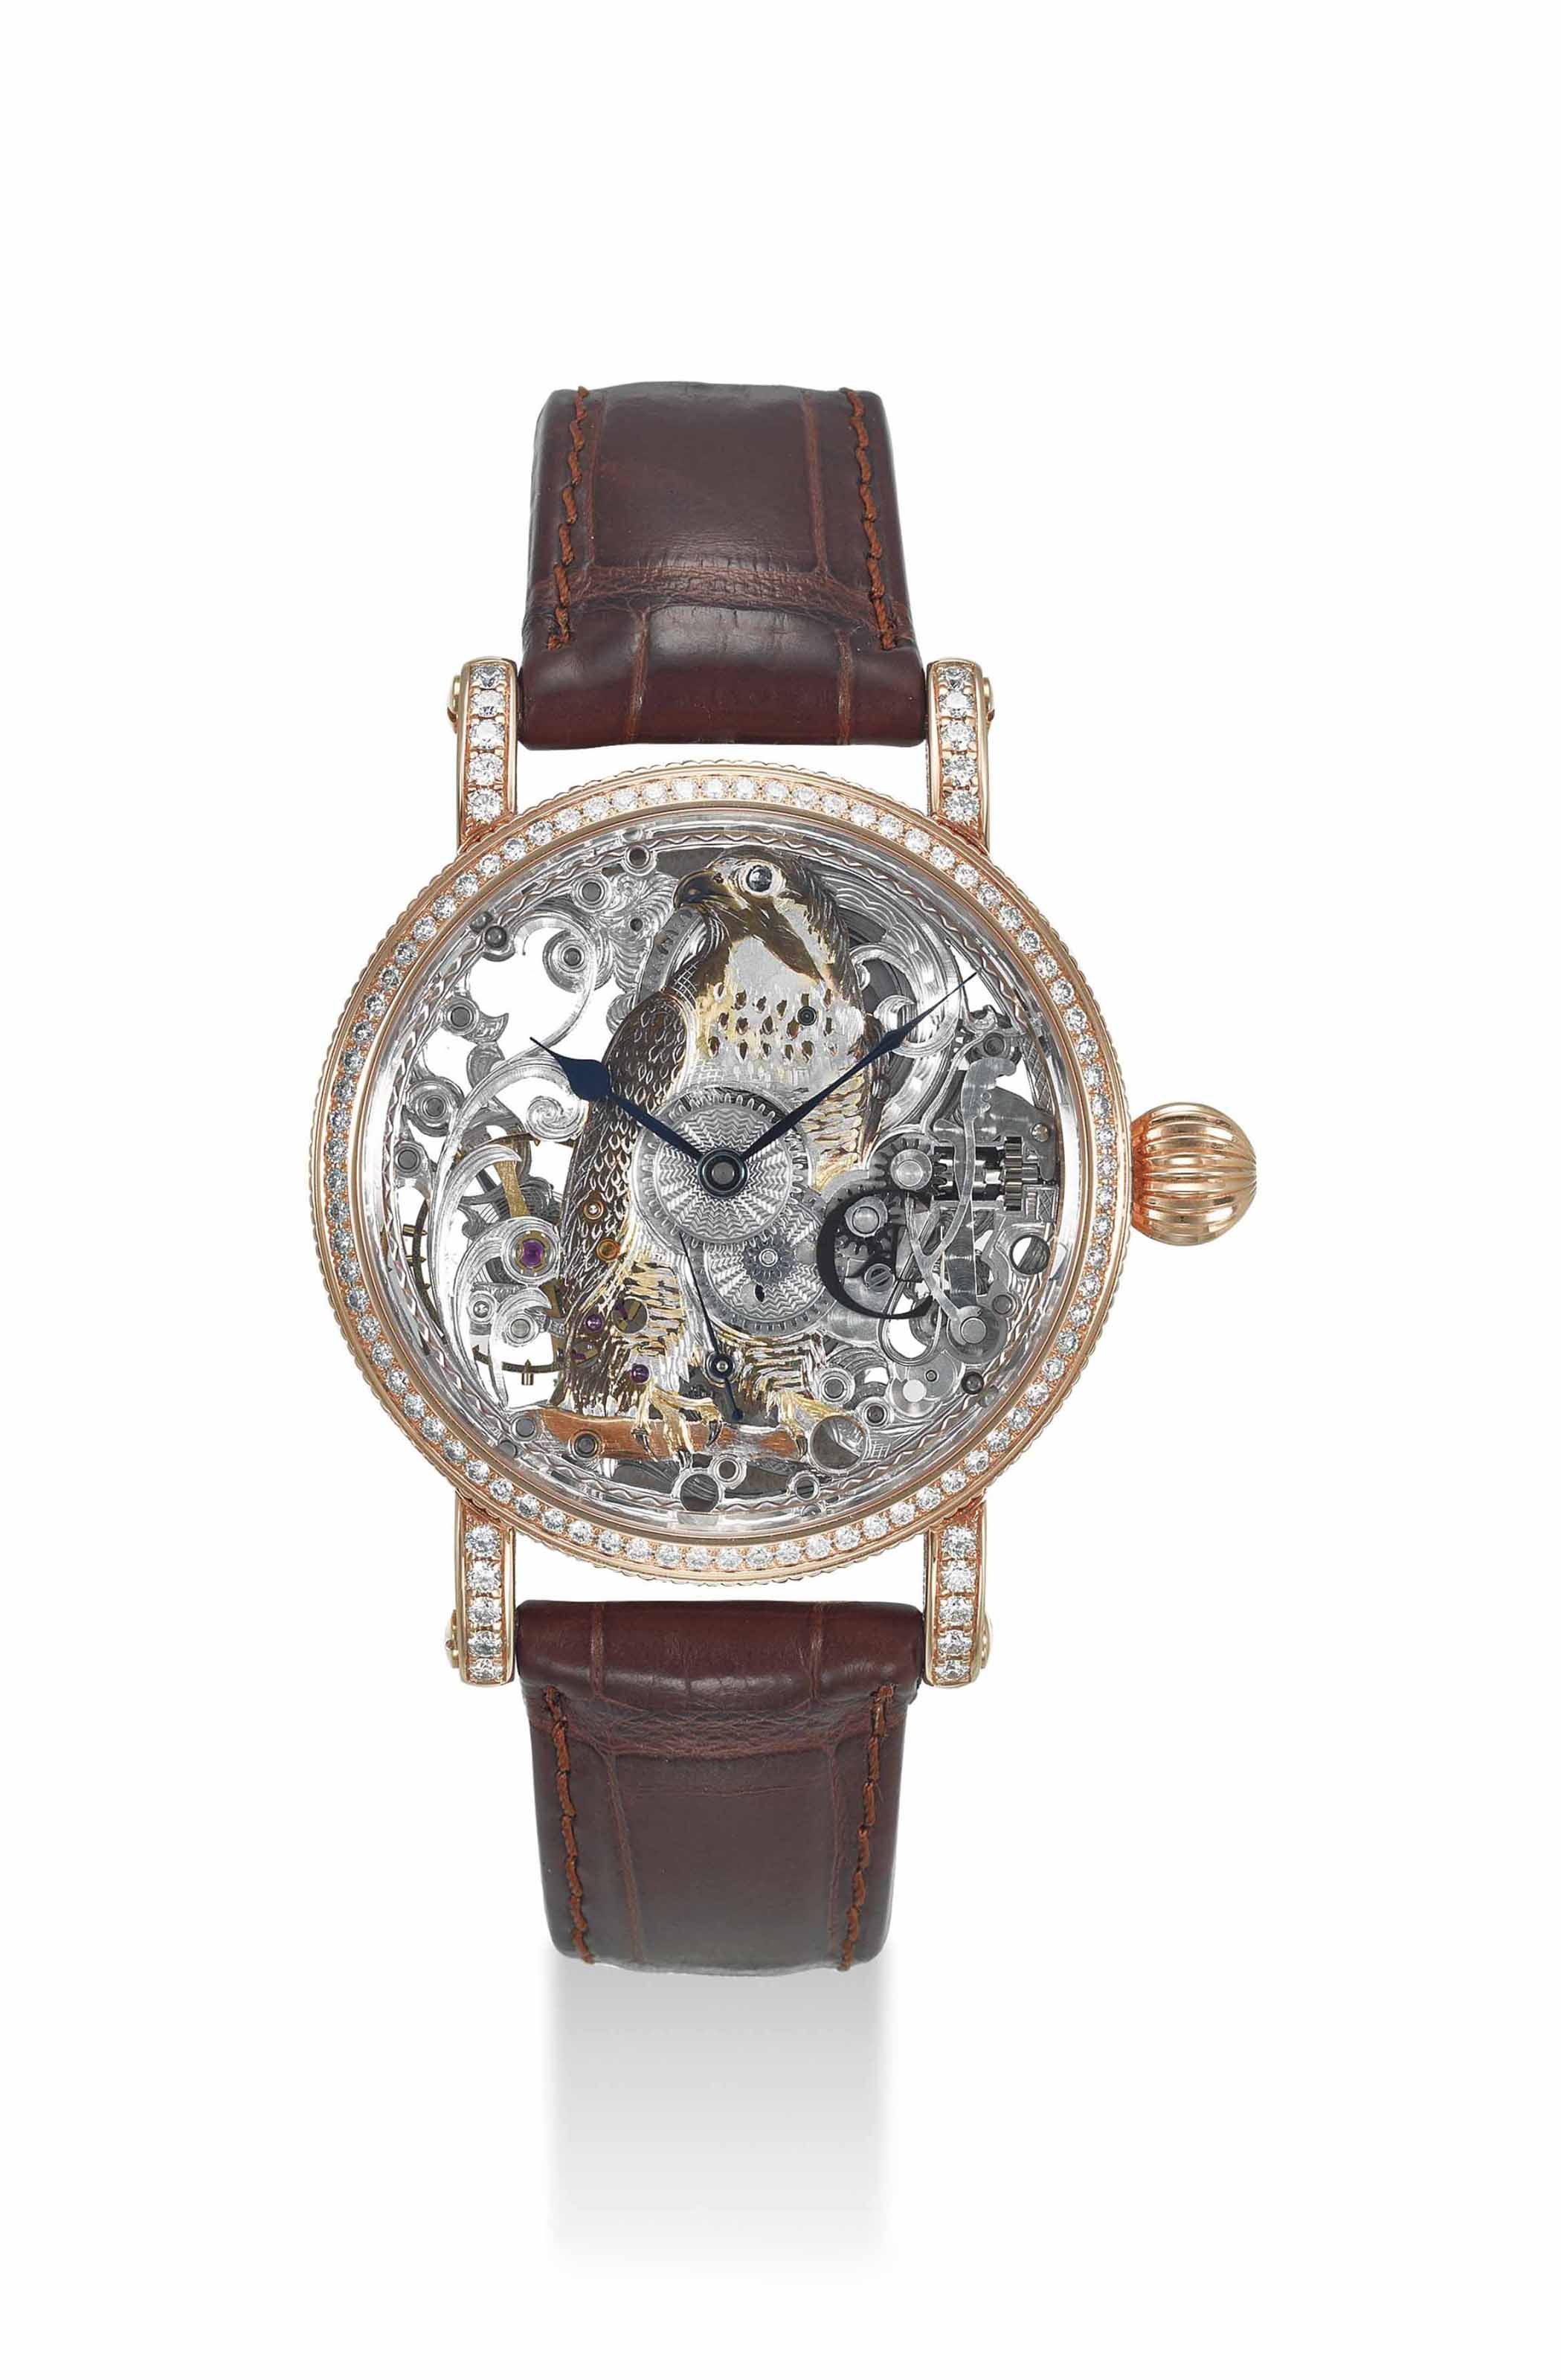 CHRONOSWISS. A FINE 18K PINK GOLD AND DIAMOND-SET LIMITED EDITION SKELETONIZED WRISTWATCH WITH ENGAVED DIAL